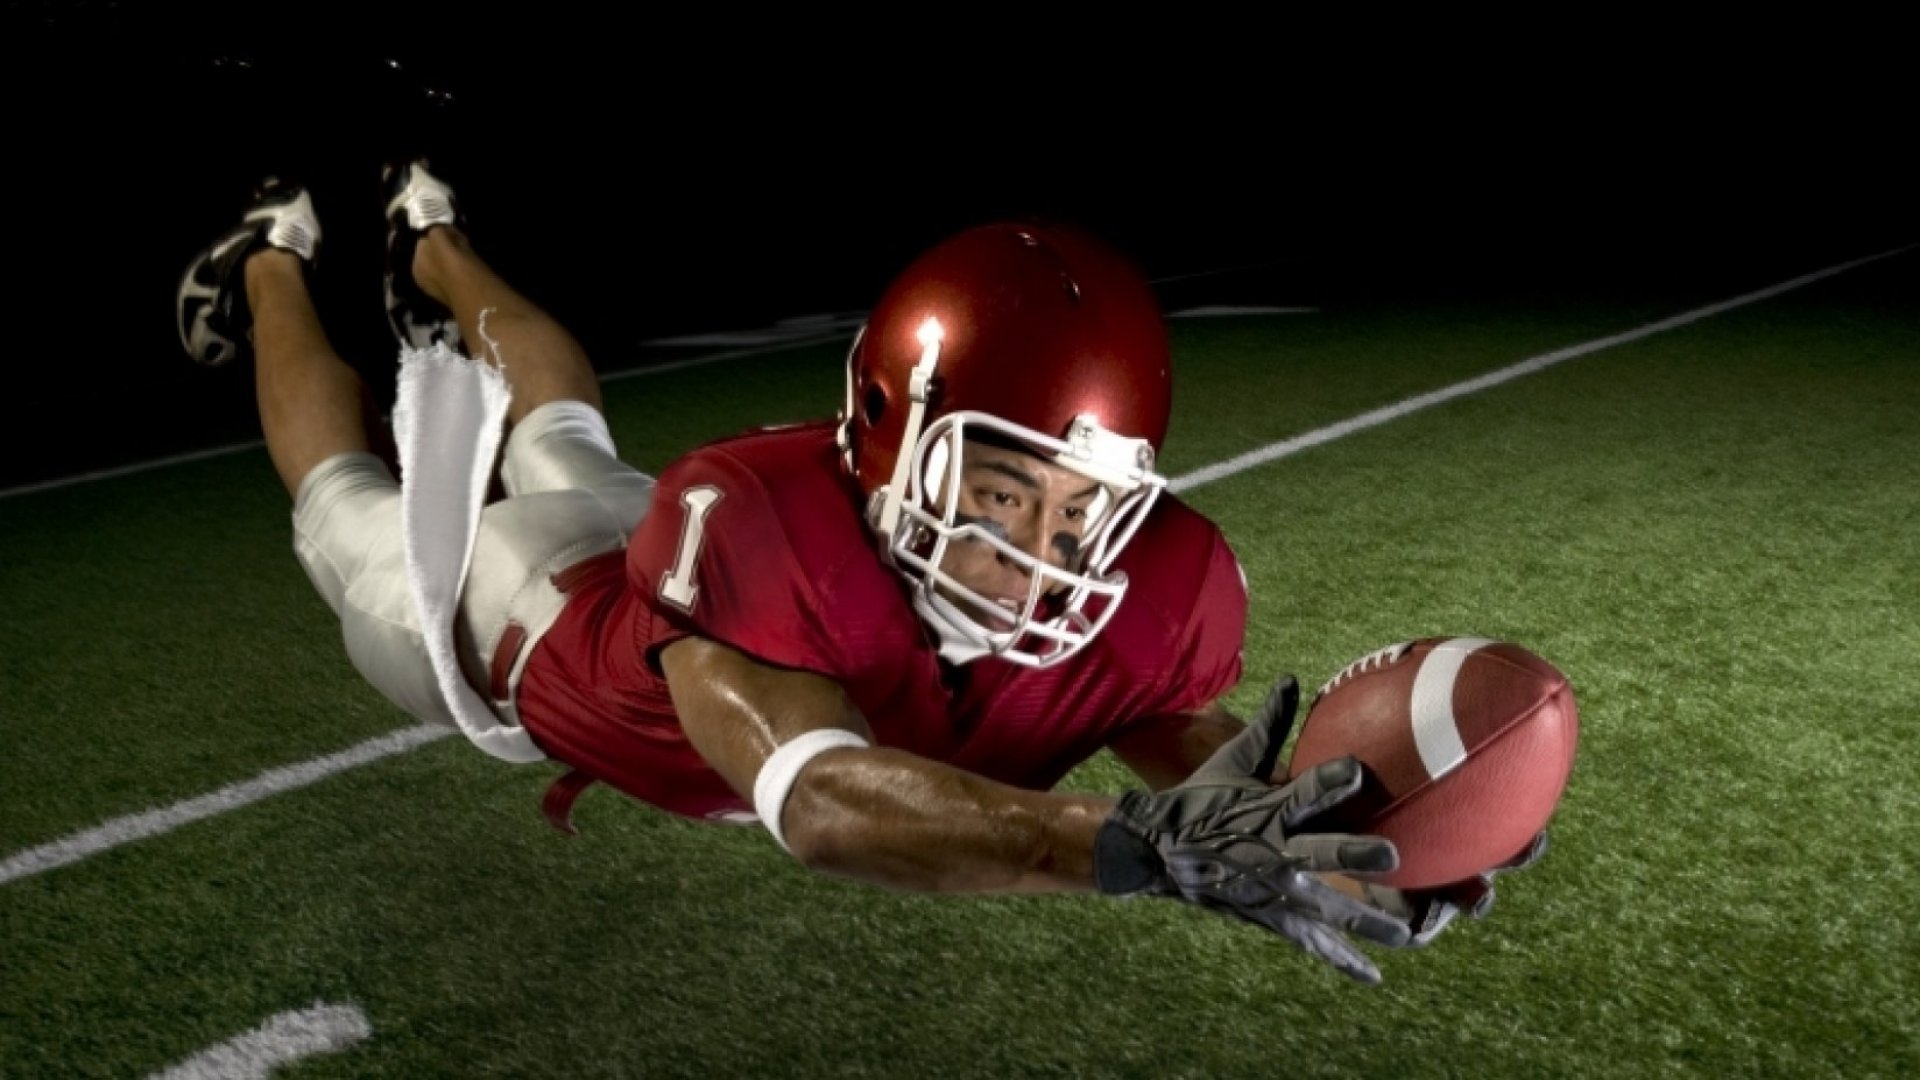 Should You Throw That Hail Mary Pass to Save a Sale?